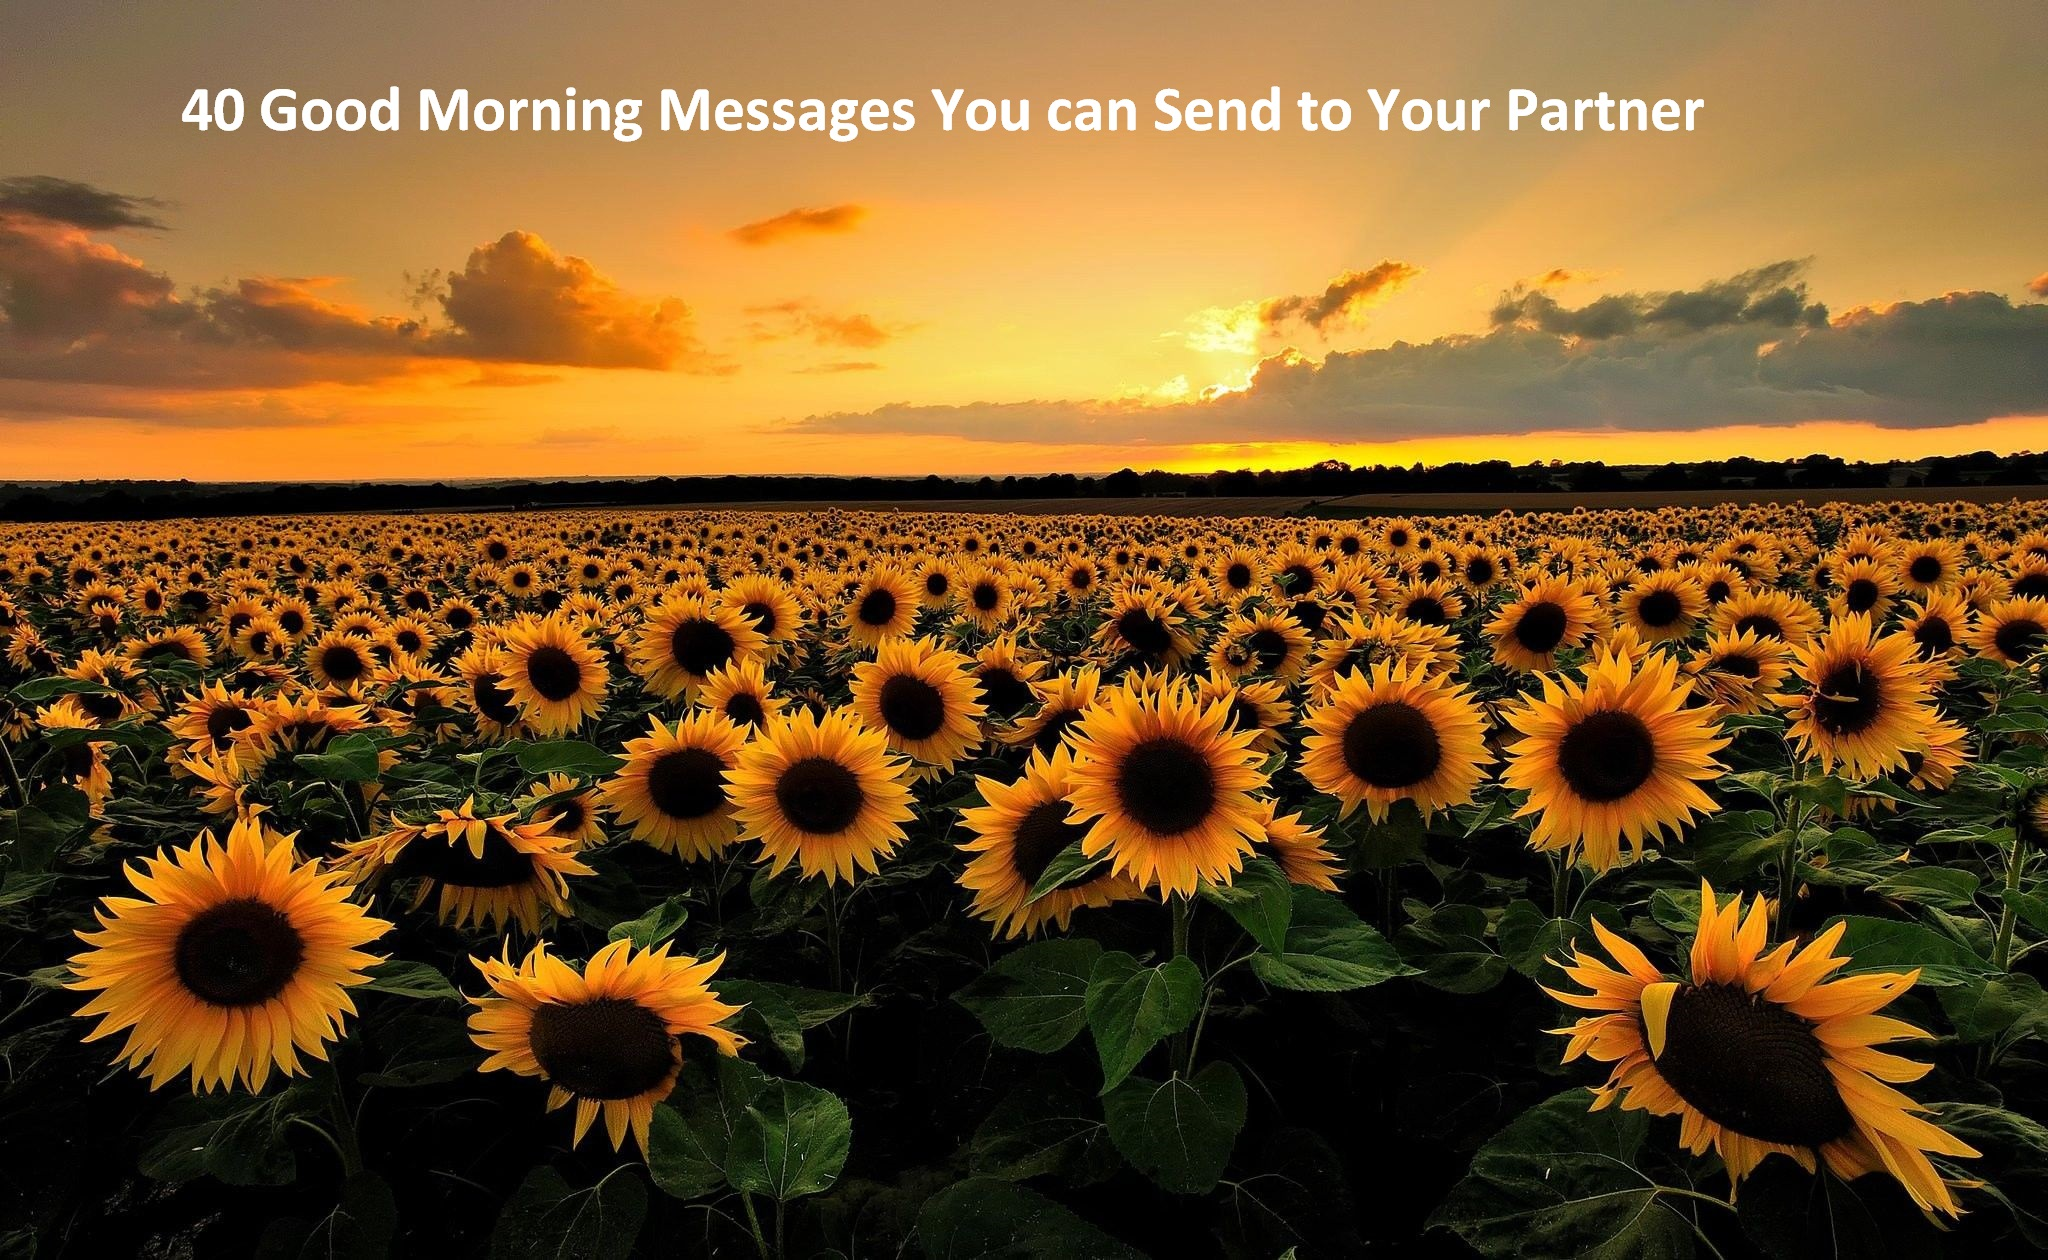 40 Good Morning Messages You can Send to Your Partner